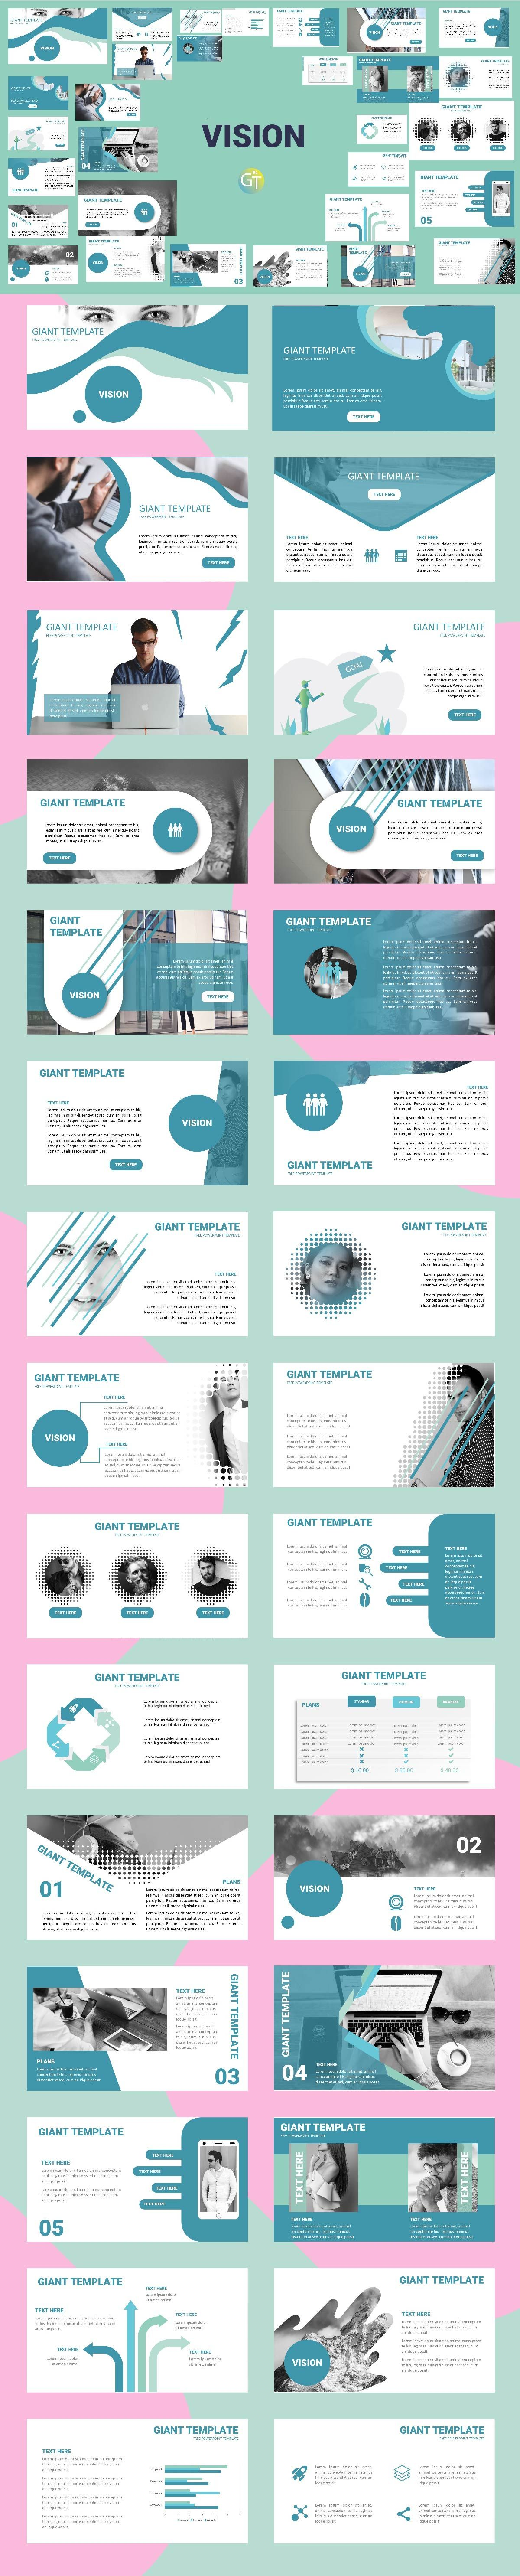 Template Powerpoint Keren Free Download 30 Slide With Animation Ready Using Morph Animation Free Powerpoint Templates Download Powerpoint Templates